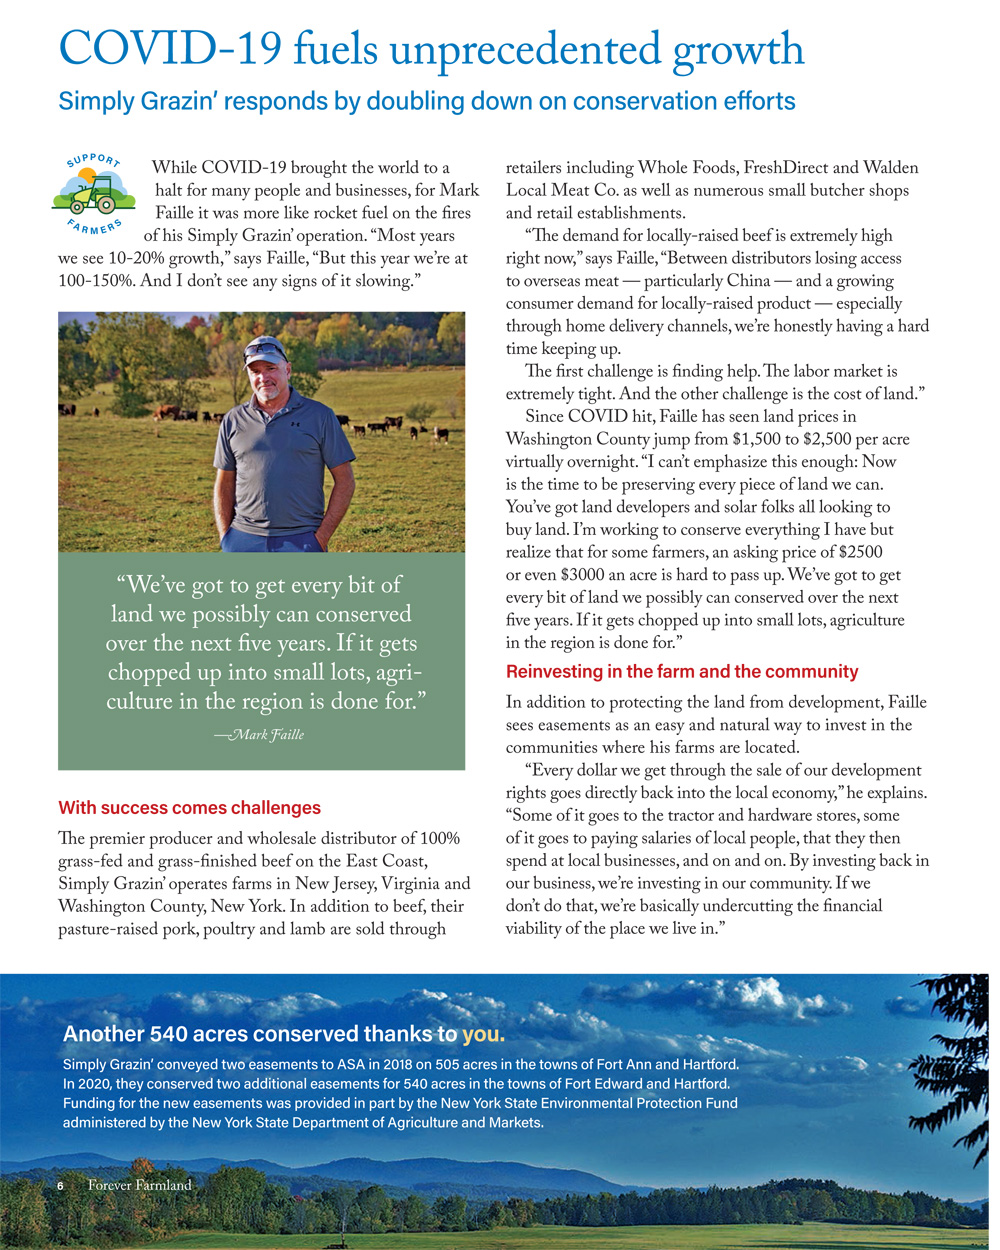 Agricultural Stewardship Association Fall/Winter 2020 newsletter article featuring Mark Faille and Simply Grazin' farms conservation efforts